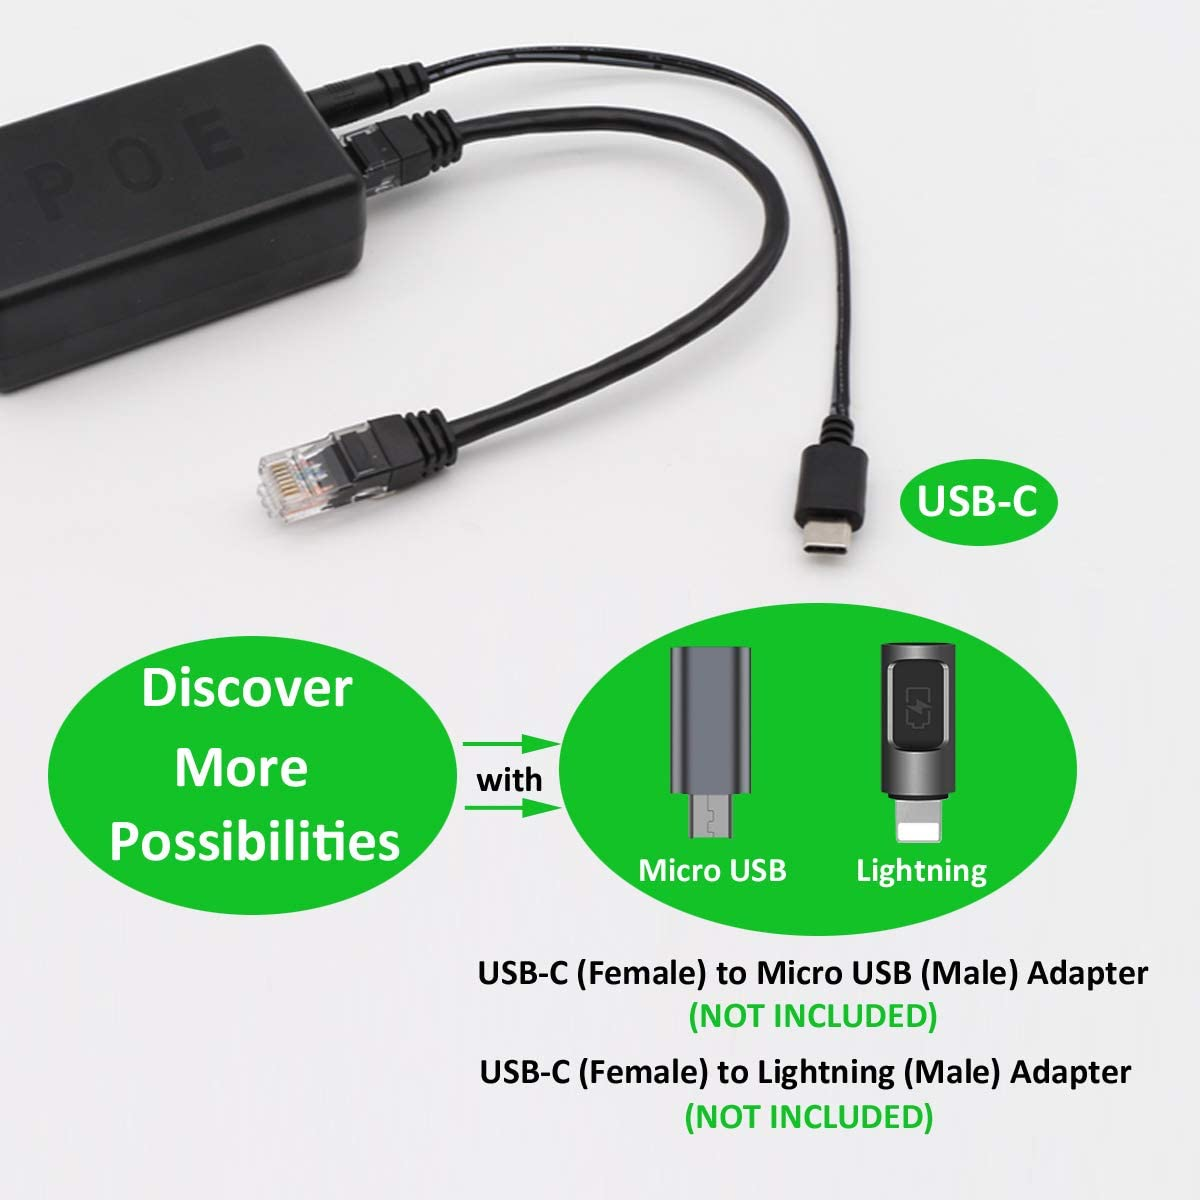 AP-POE-USBC PoE to USB Type-C 5V//4A Max Power 10//100//1000Mbps Ethernet Data Adapter for Raspberry Pi 4 and More AuviPal USB-C Gigabit PoE Splitter 802.3af//at Compliant |